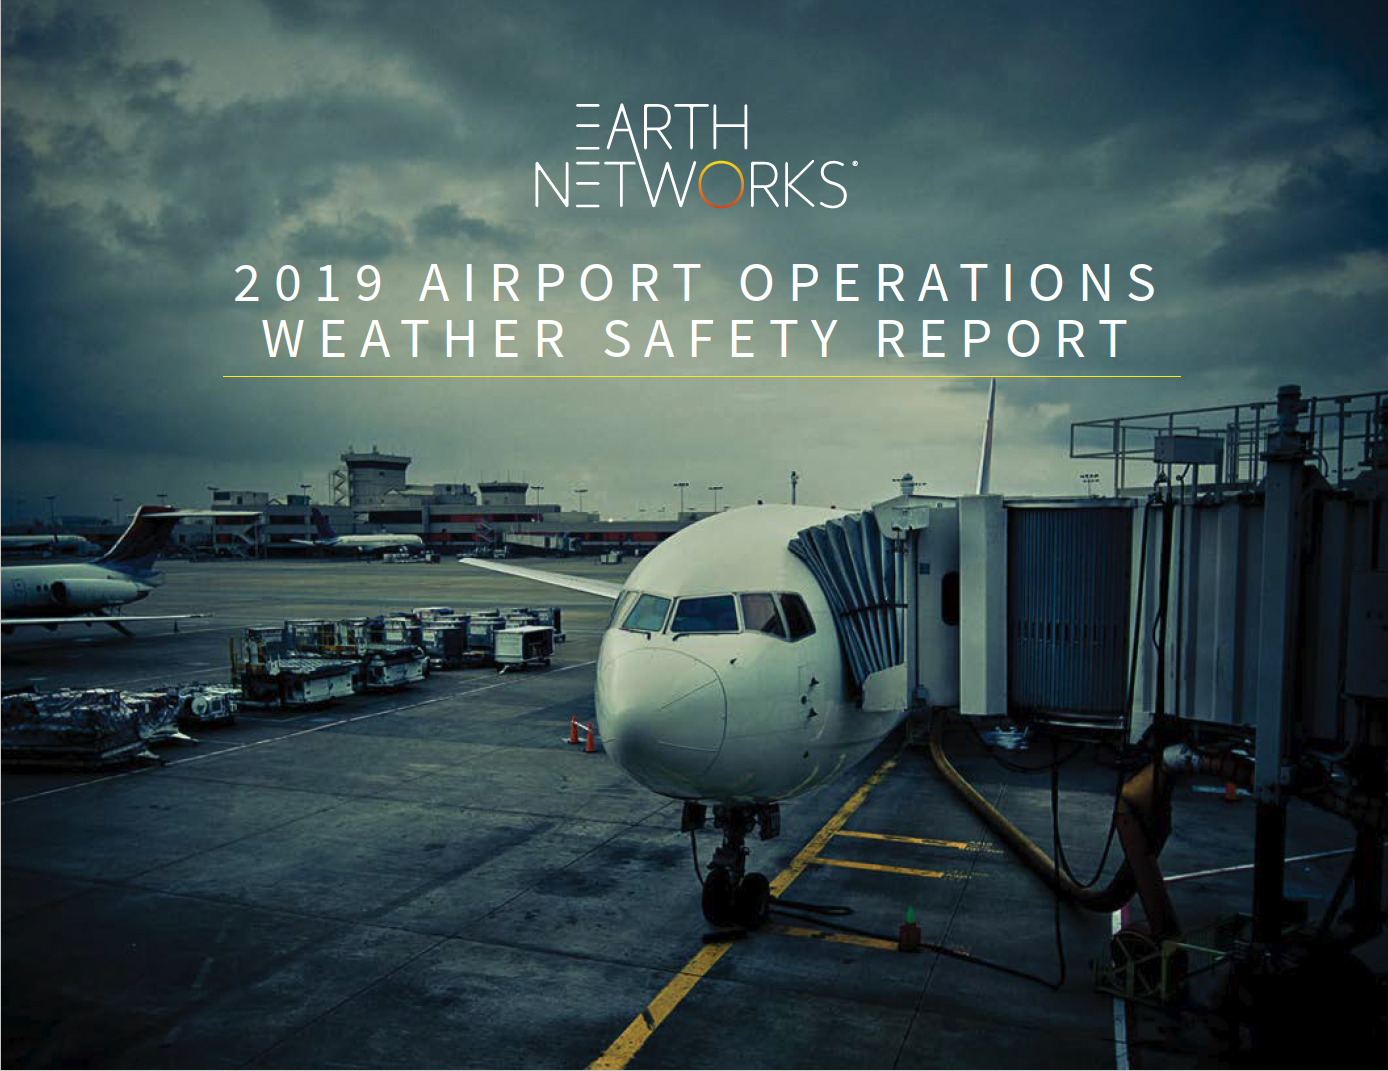 2019 Airport Operations Weather Safety Report